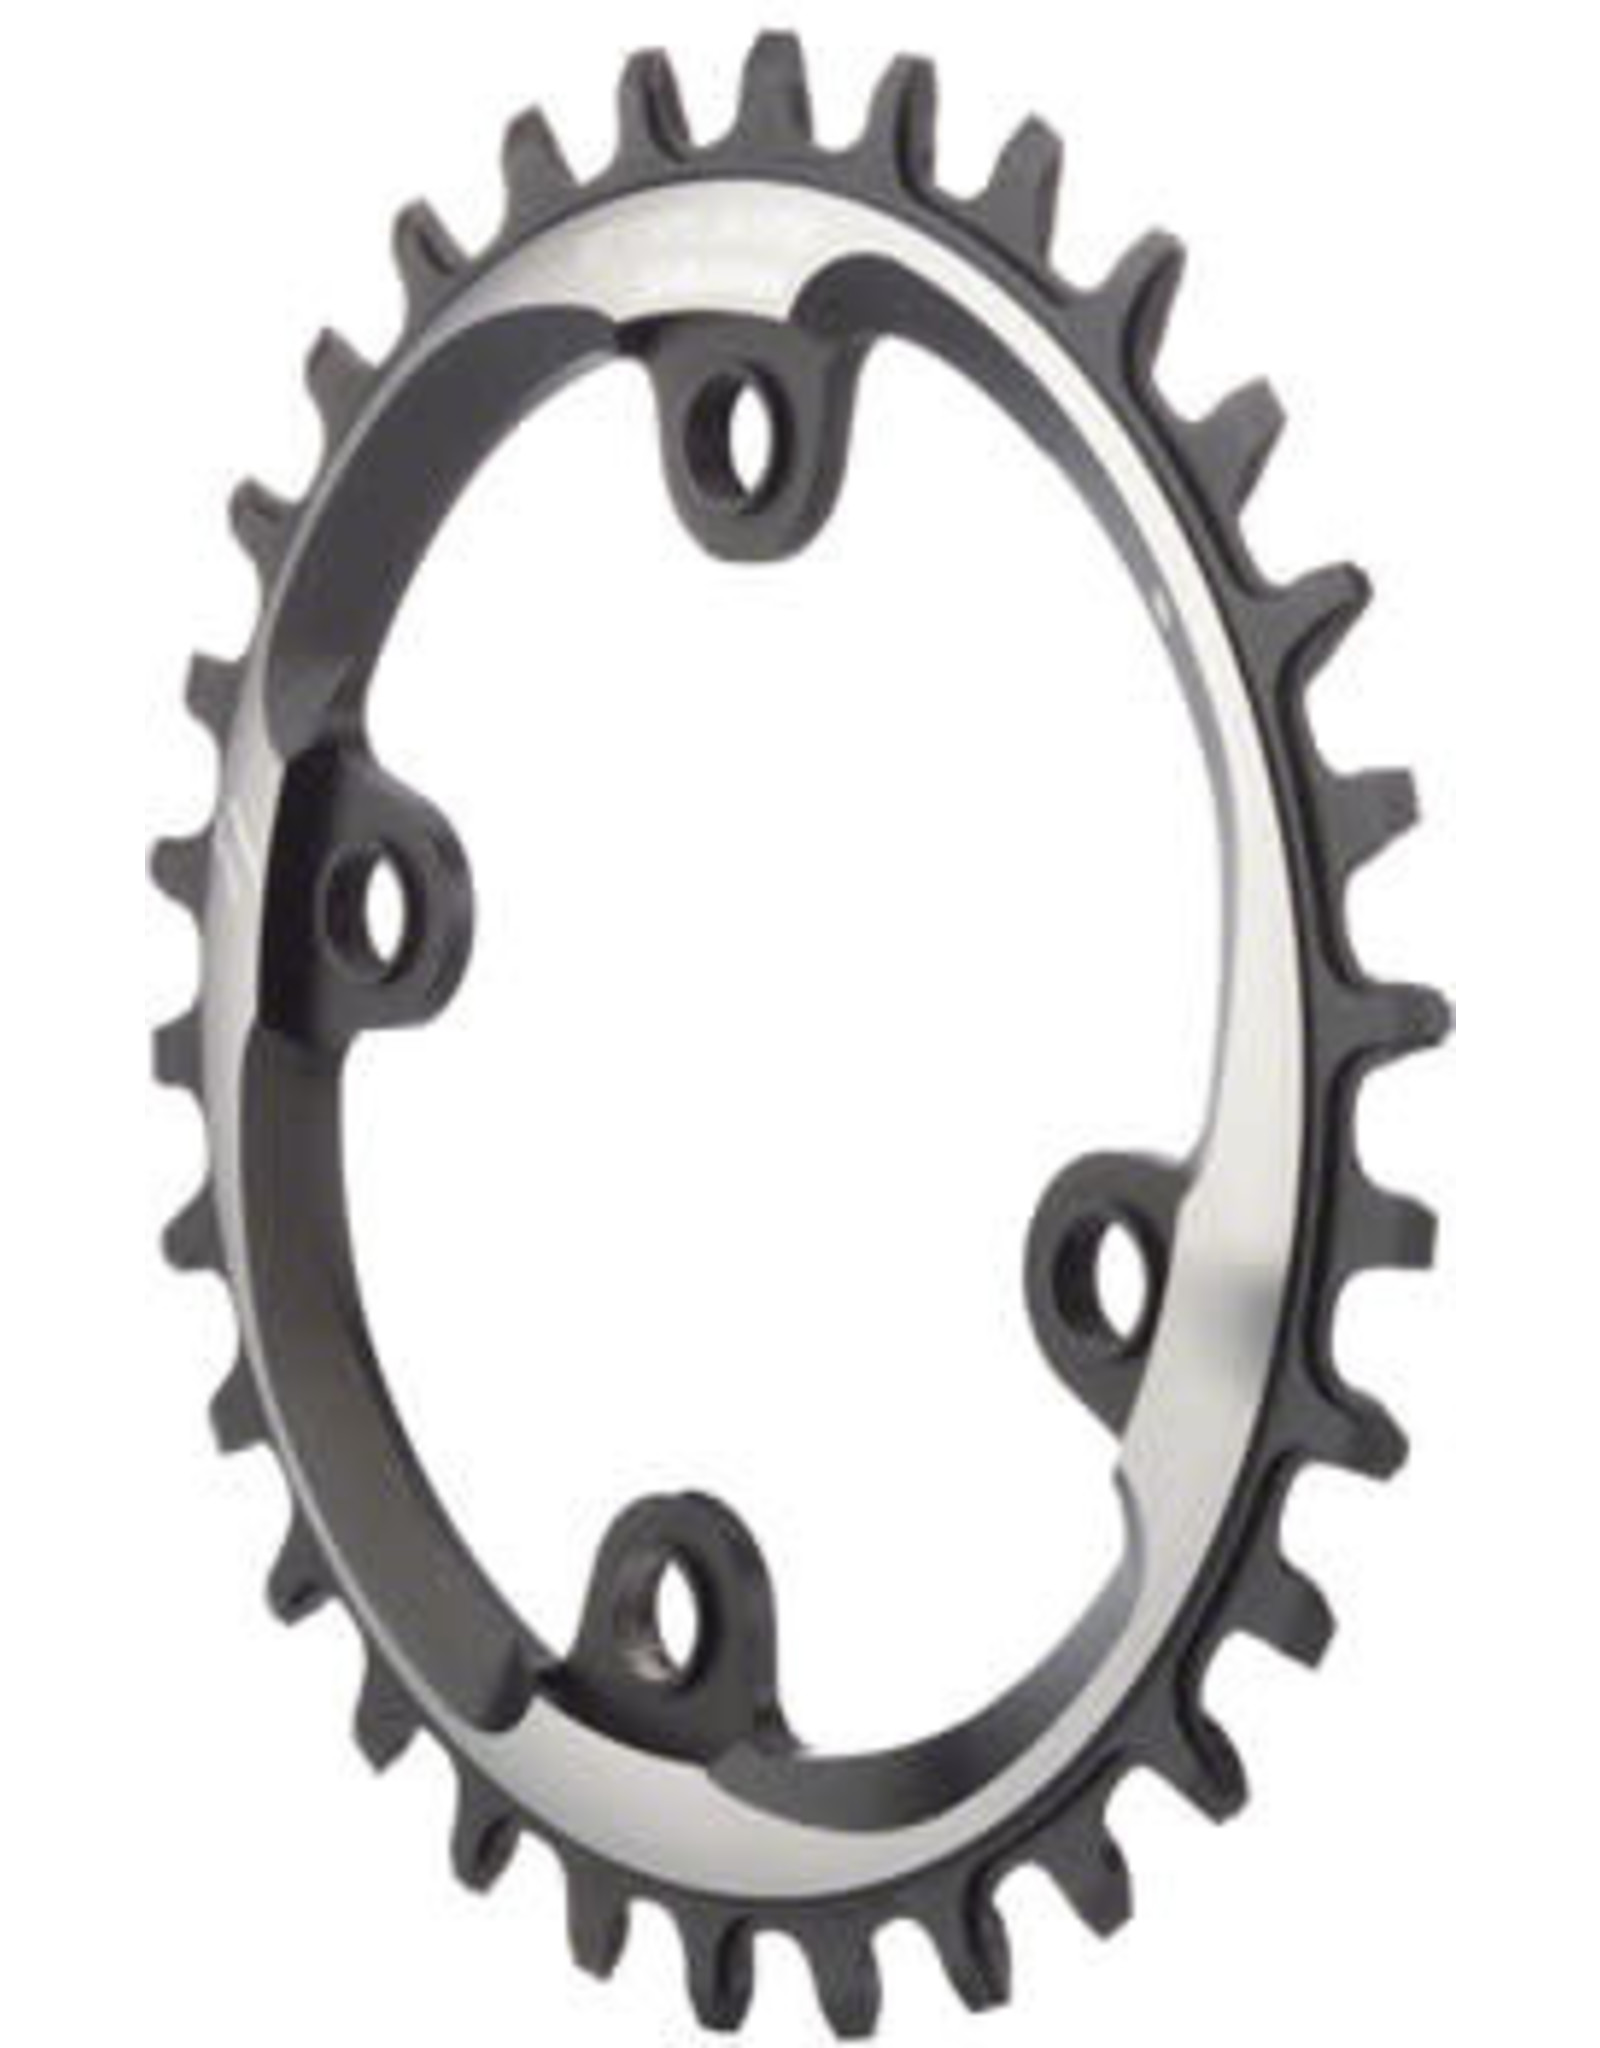 SRAM SRAM XX1 X-Sync 34 Tooth 76mm BCD Chainring fits 10 and 11 Speed SRAM Chains